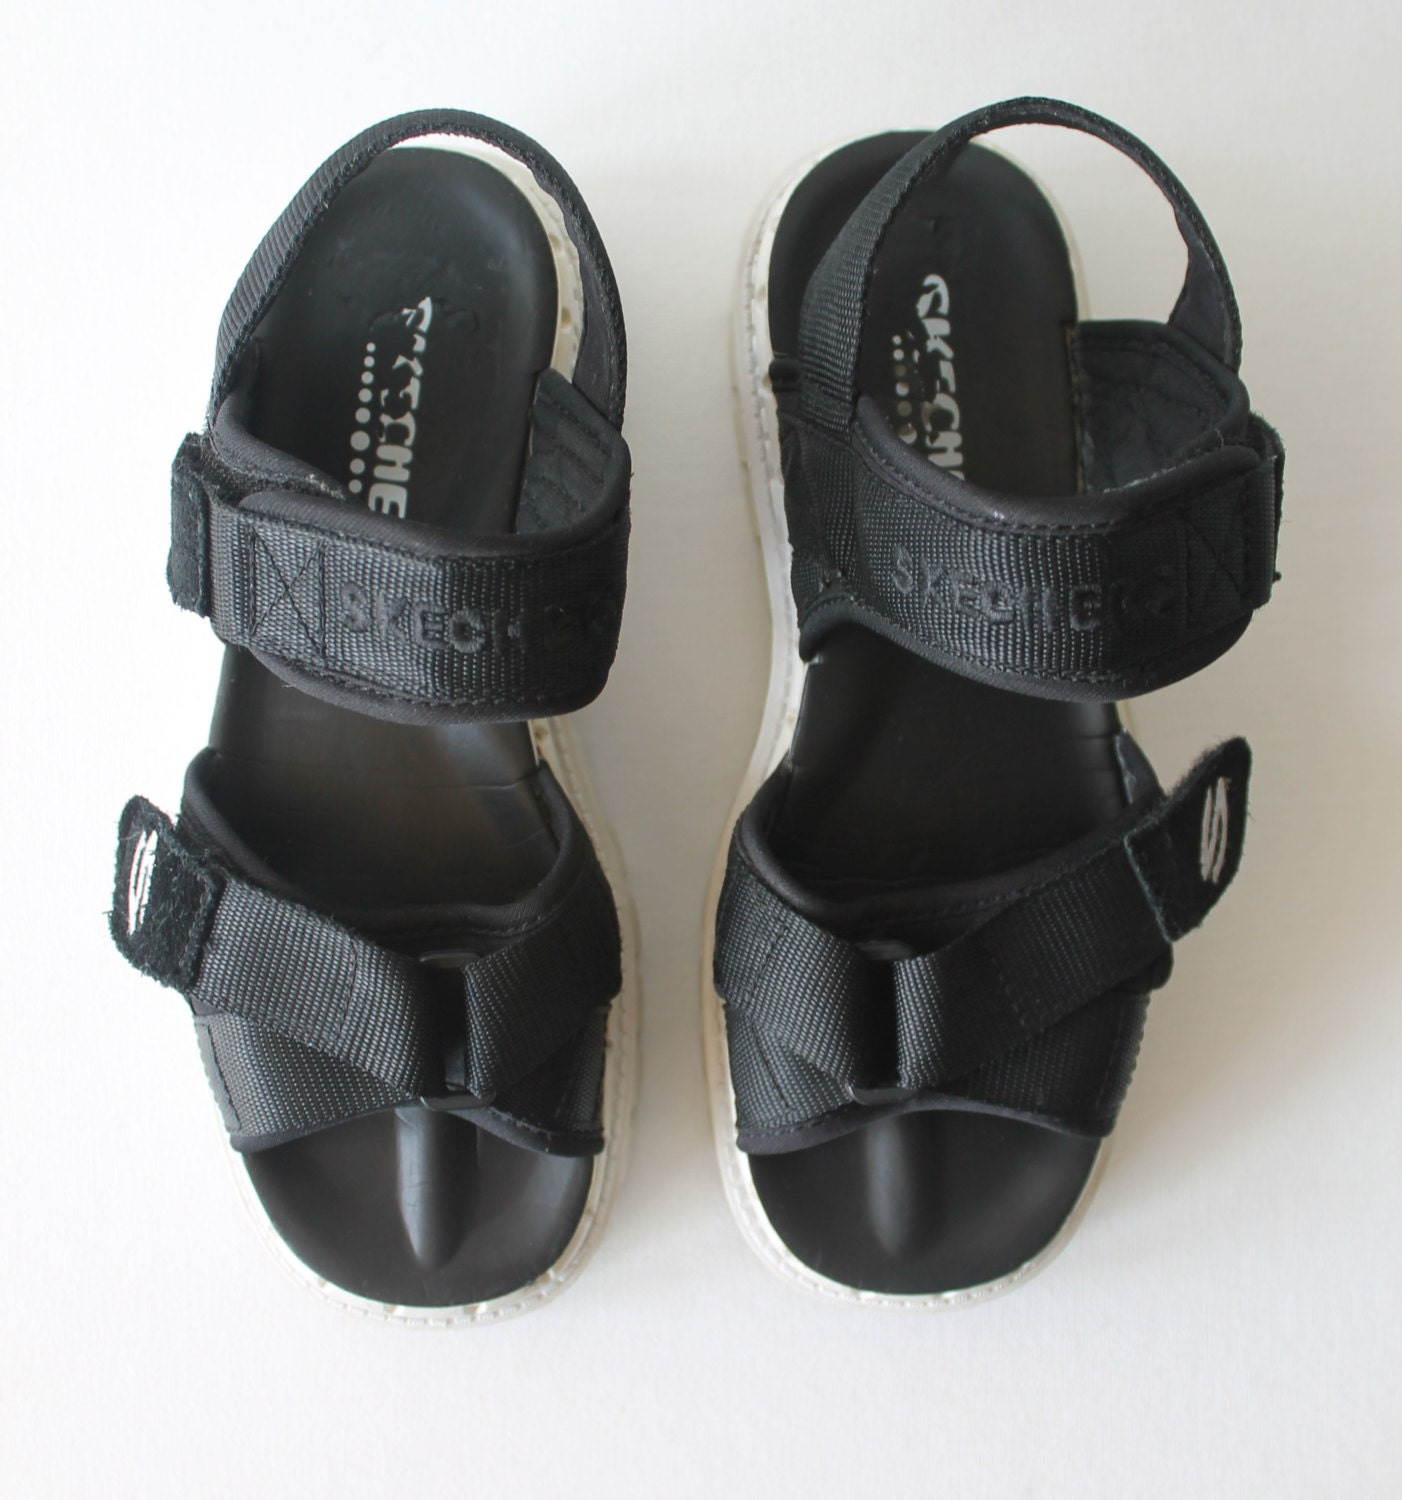 90 s chunky platform sandals rubber sole platform by